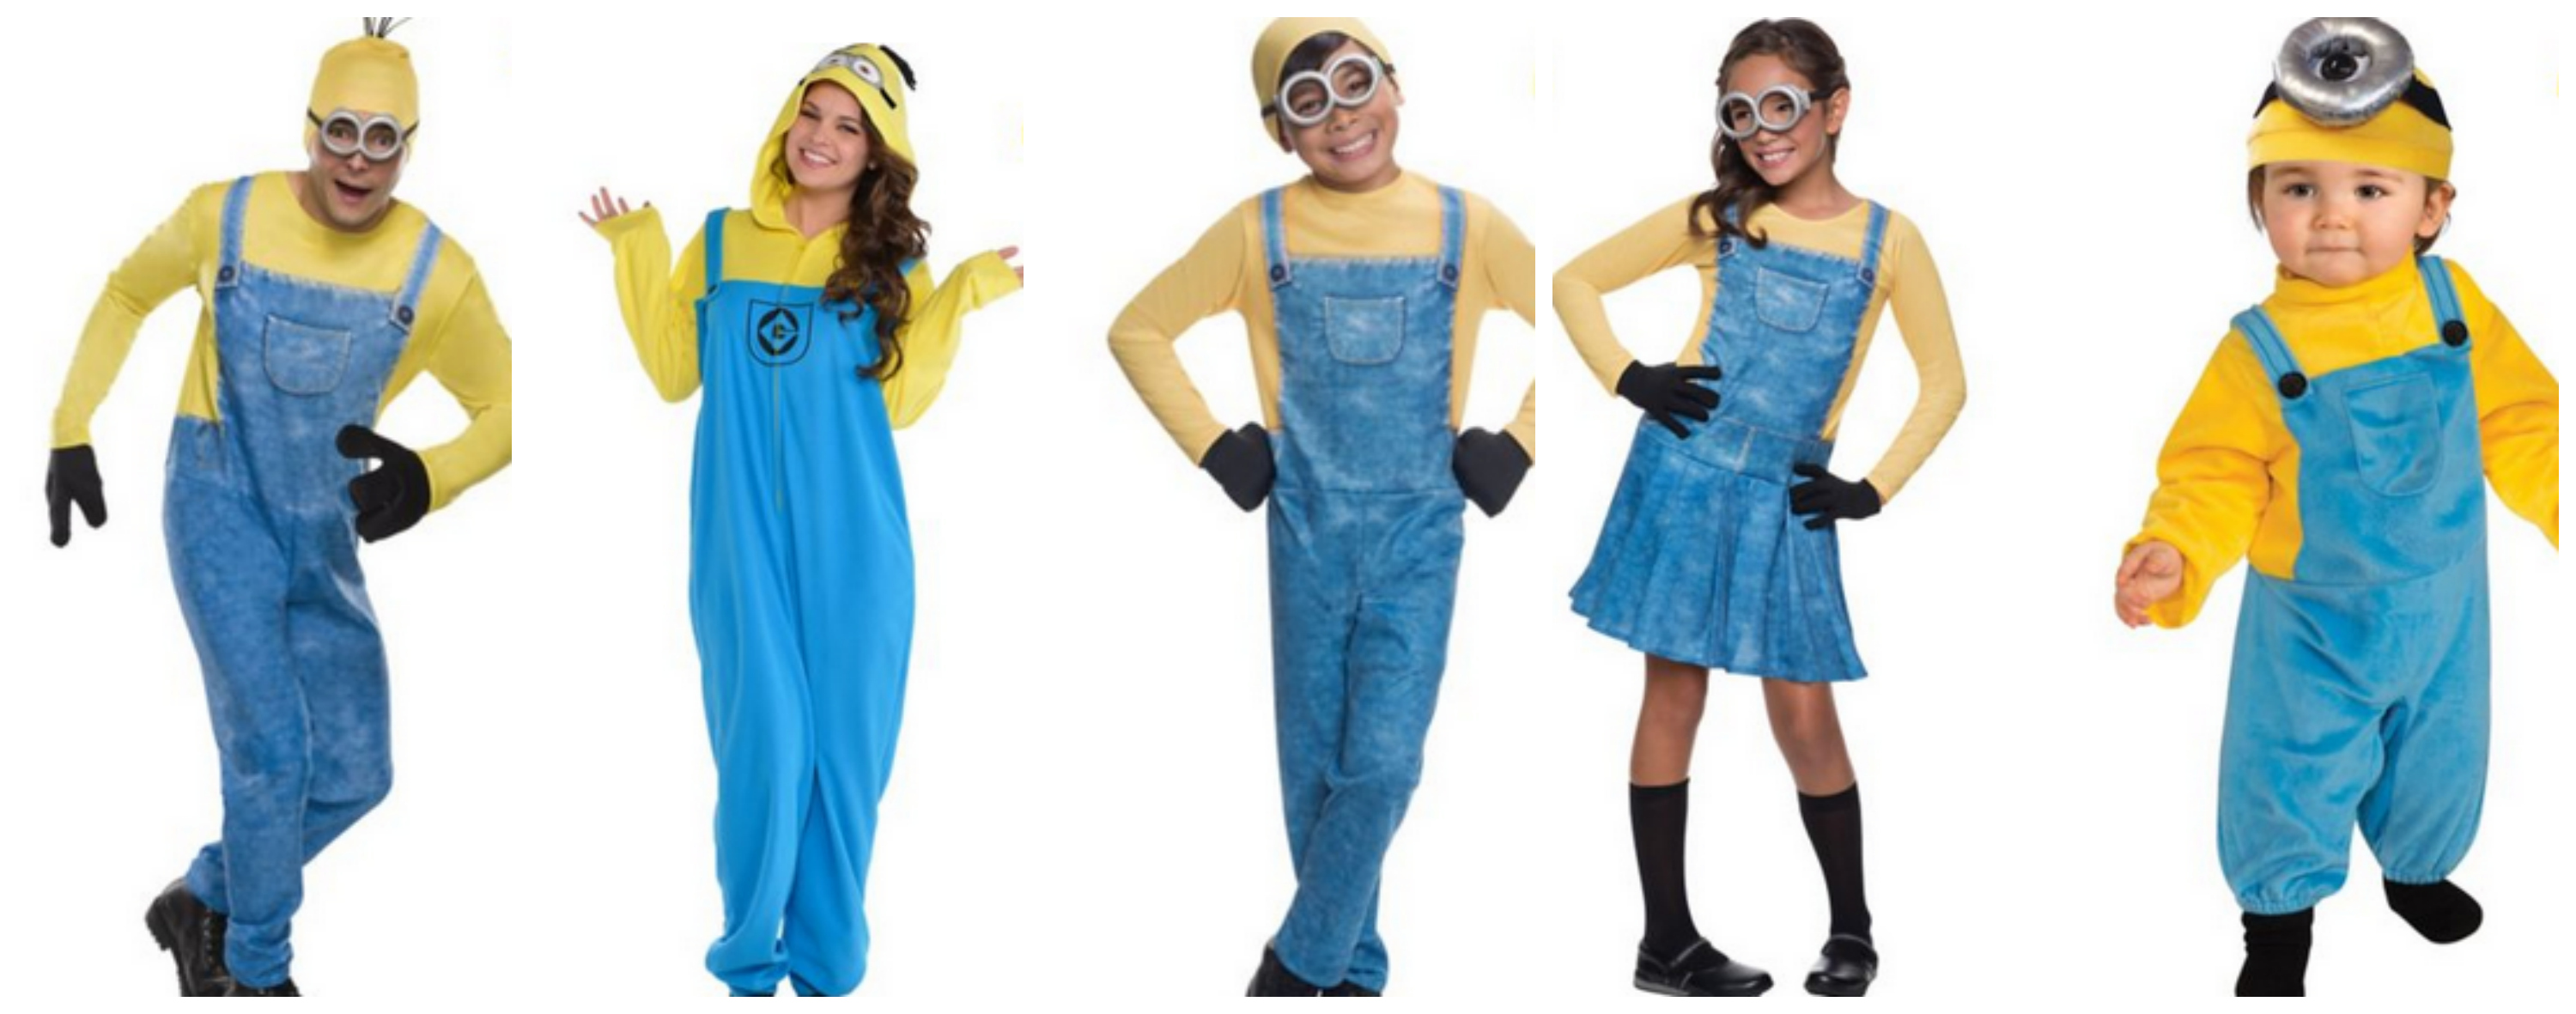 Minions Family Halloween Costume Idea